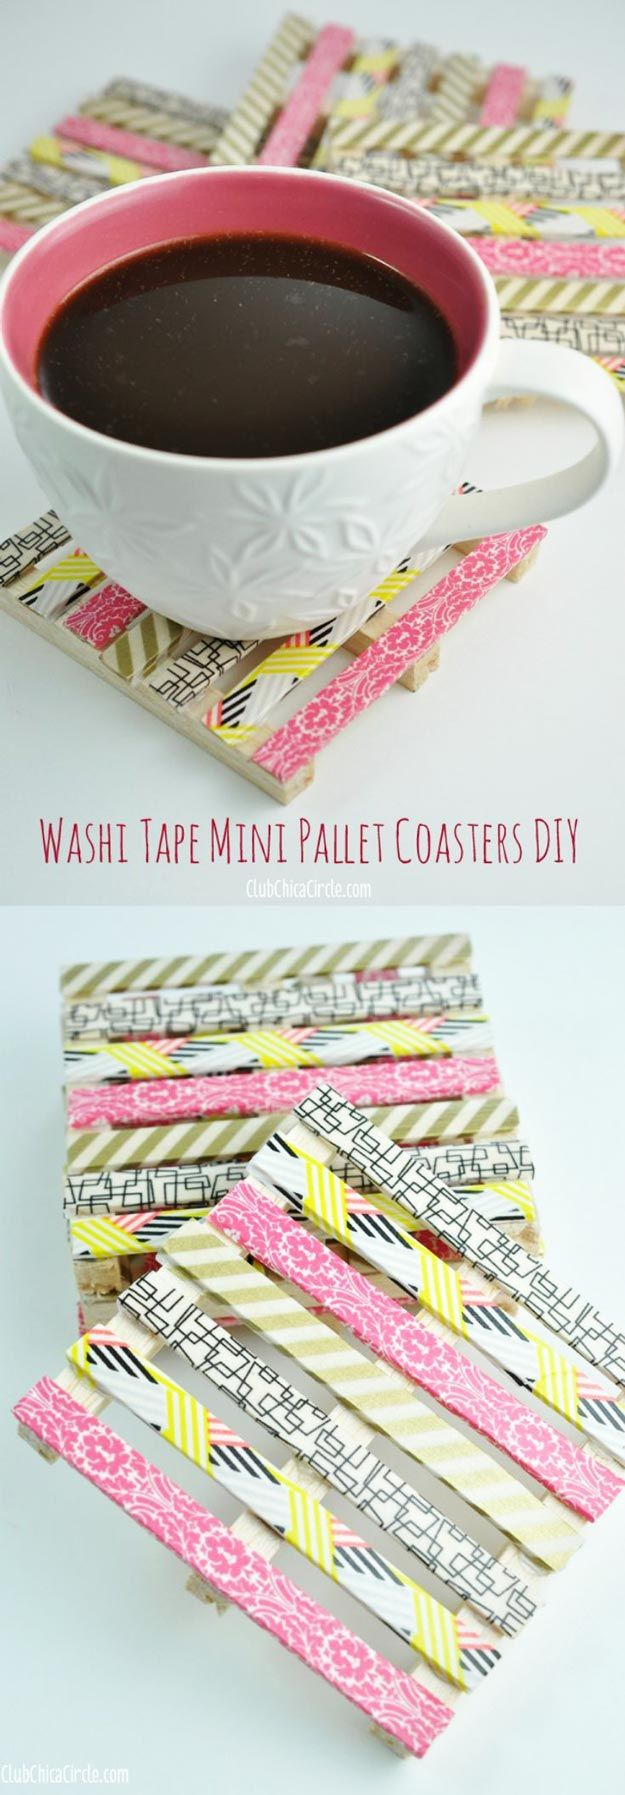 75 Brilliant Crafts To Make And Sell Pallet Coasters